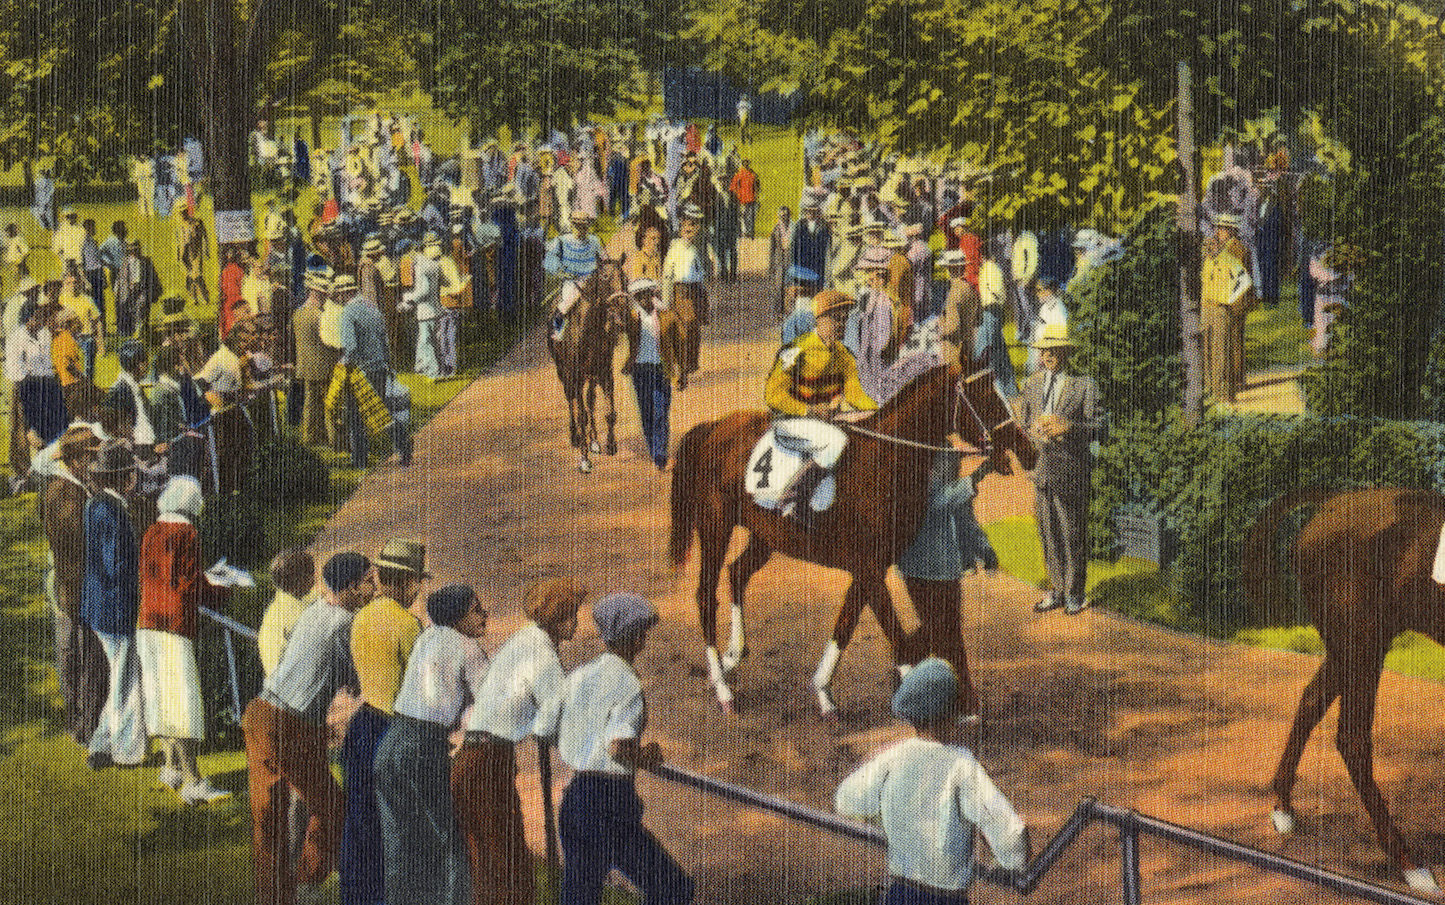 A parade from paddock to post along the back yard's meandering pathways. Image courtesy of Boston Public Library